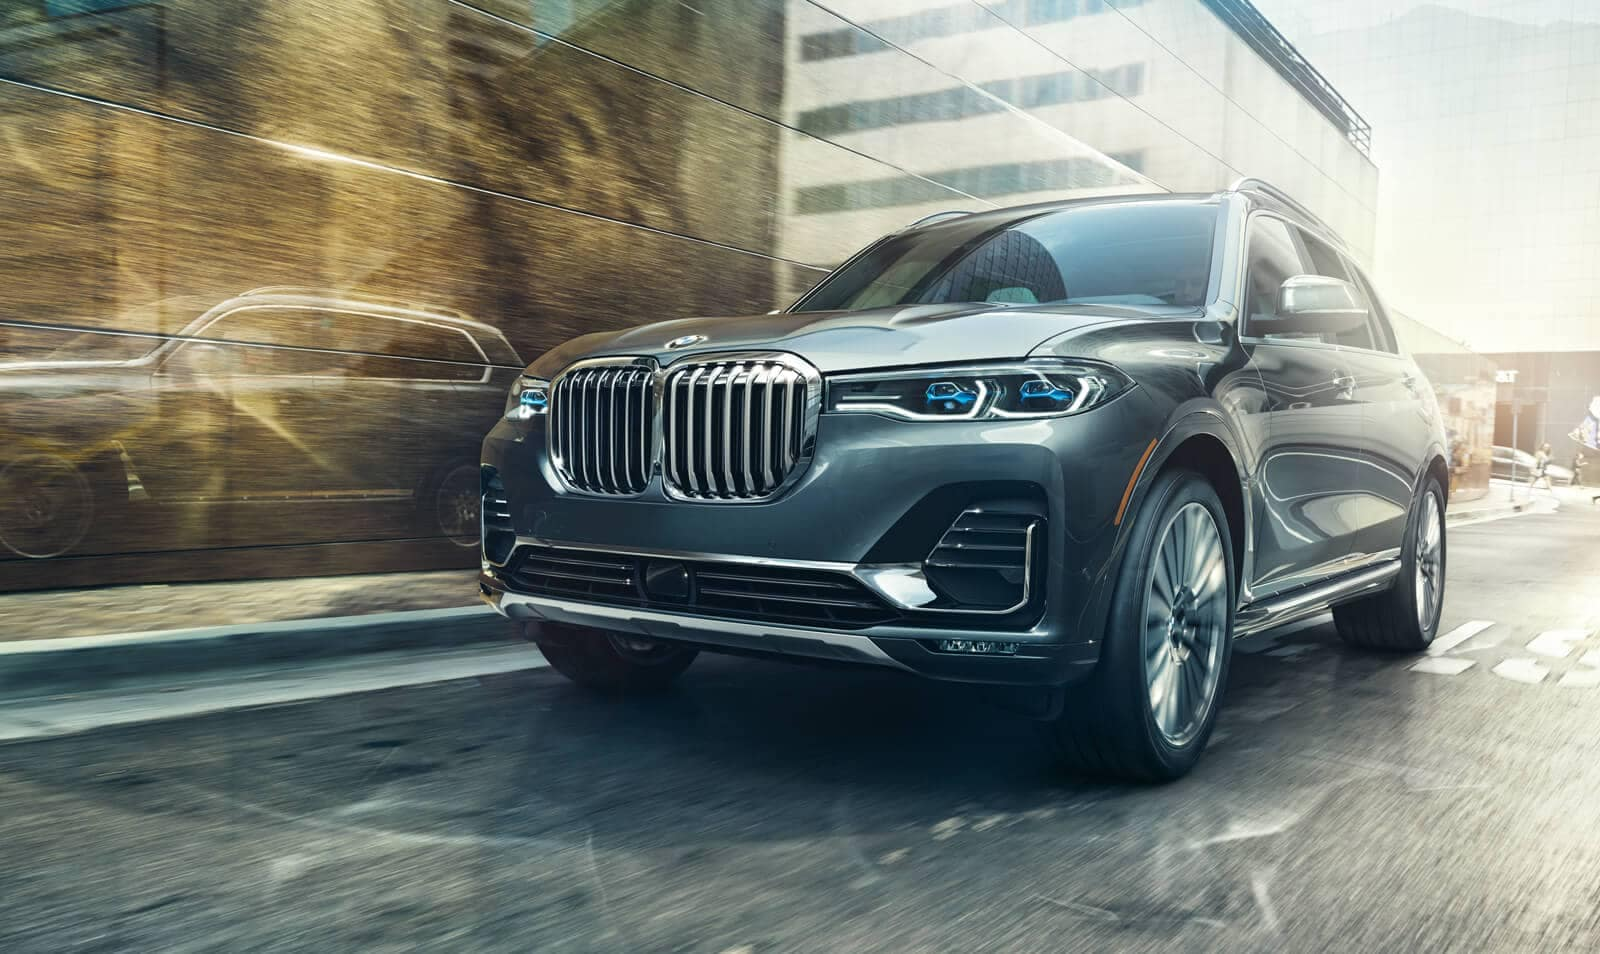 A frontal picture of the 2019 BMW X7 driving along an urban road.